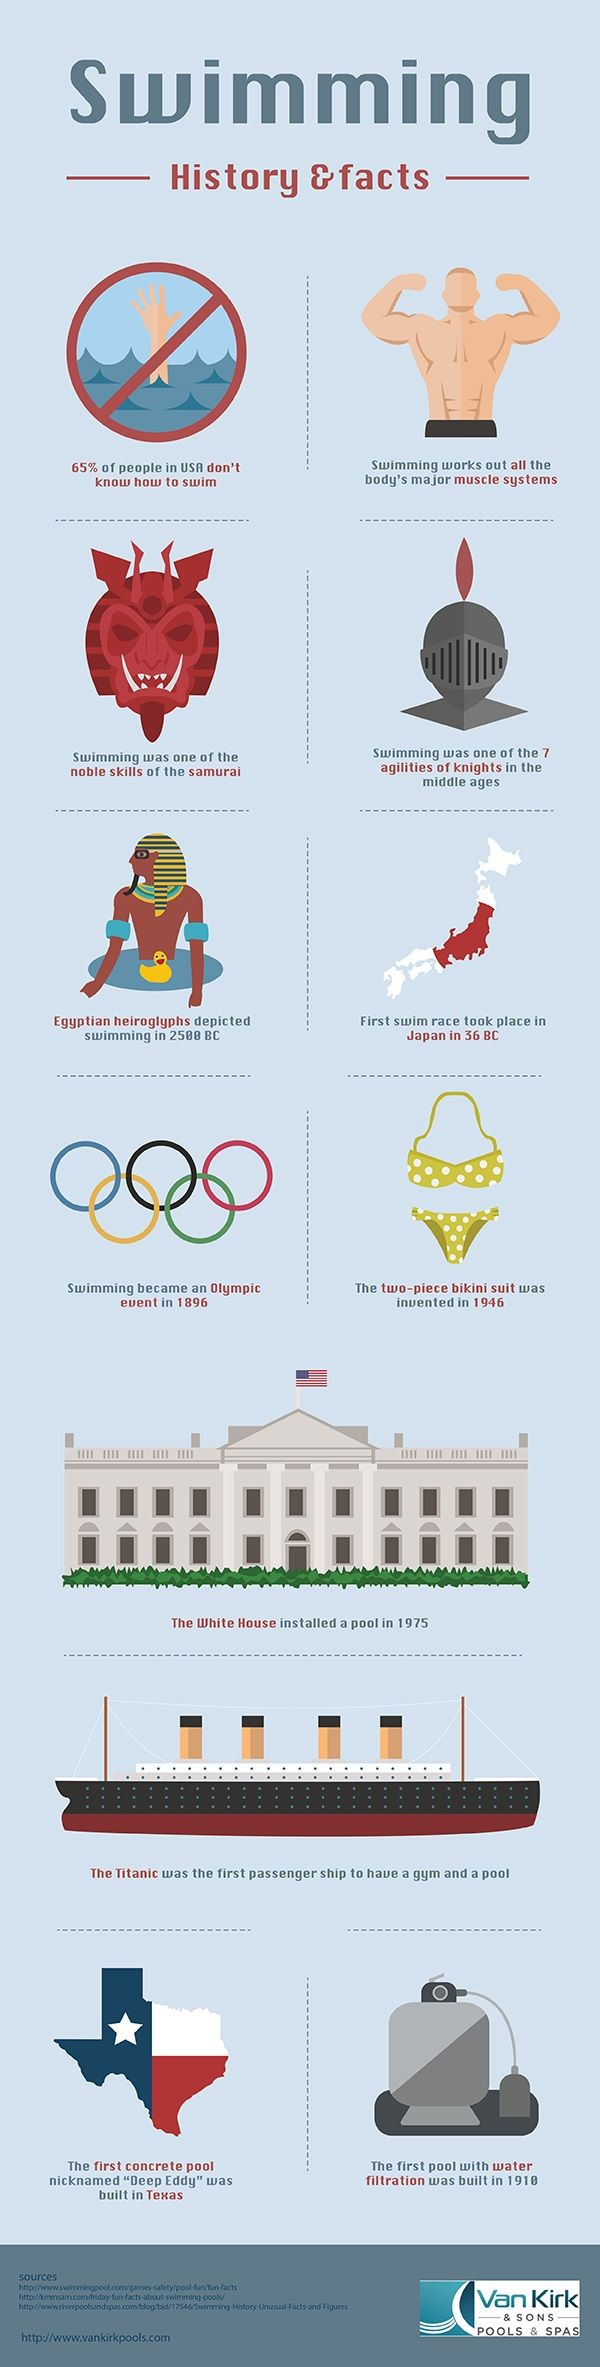 Swimming facts infographic - how much do you know about the history of swimming?